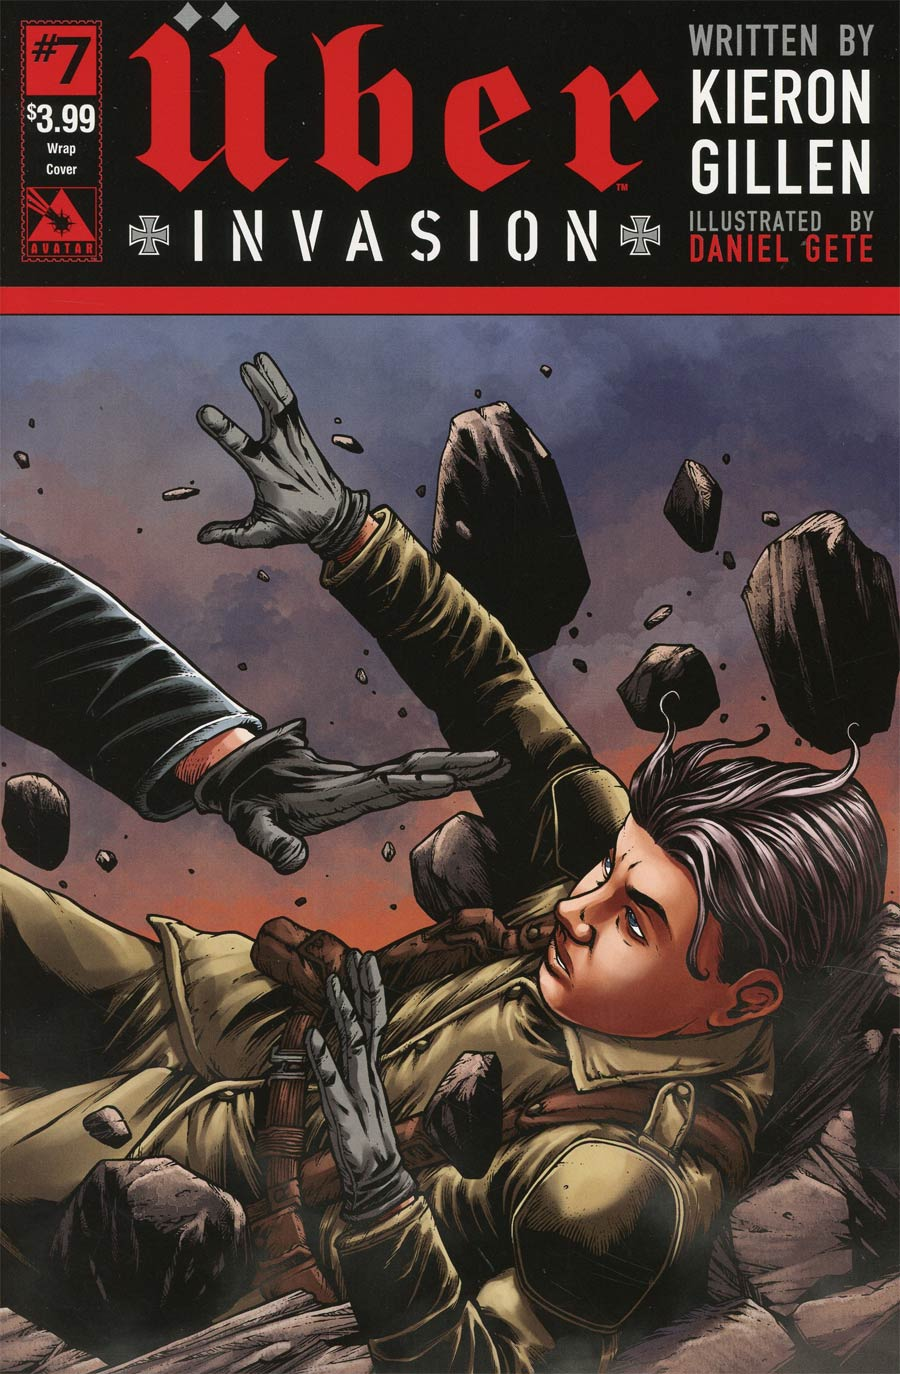 Uber Invasion #7 Cover B Wraparound Cover